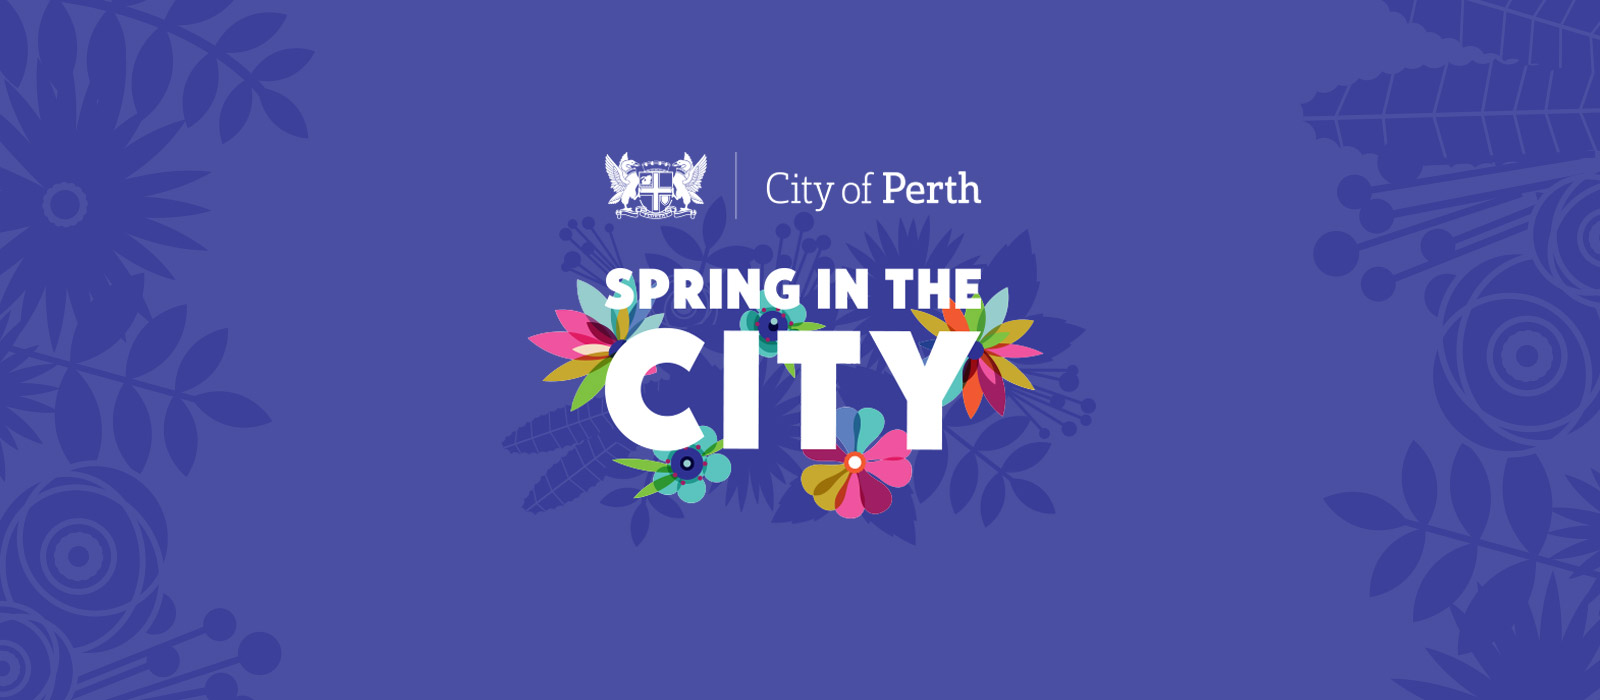 Spring in the City logo